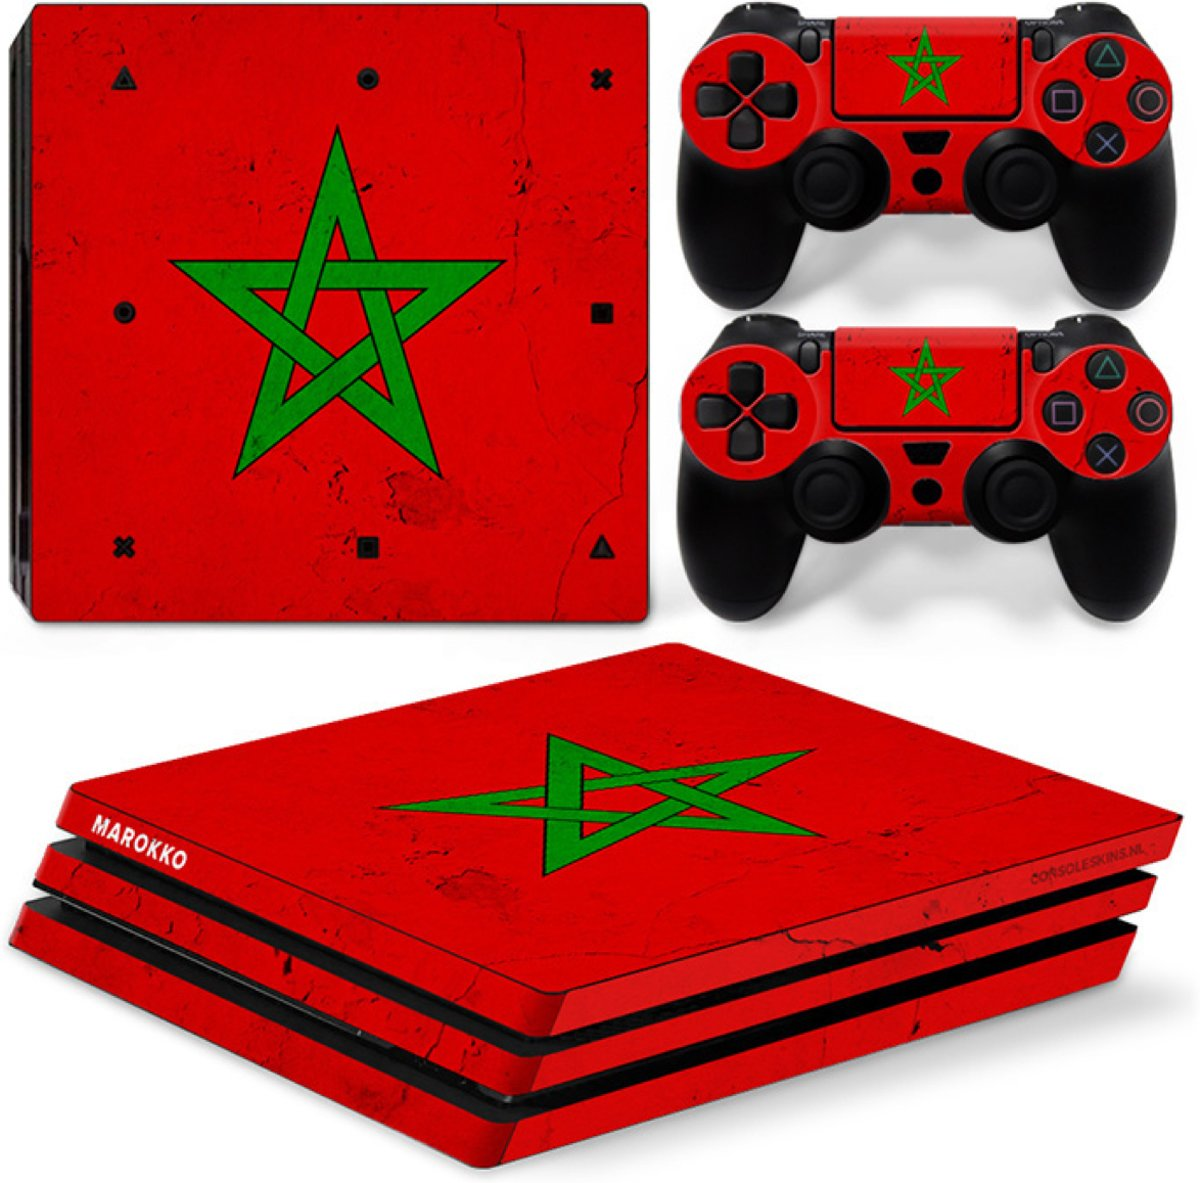 Marokko - PS4 Pro Console Skins PlayStation Stickers